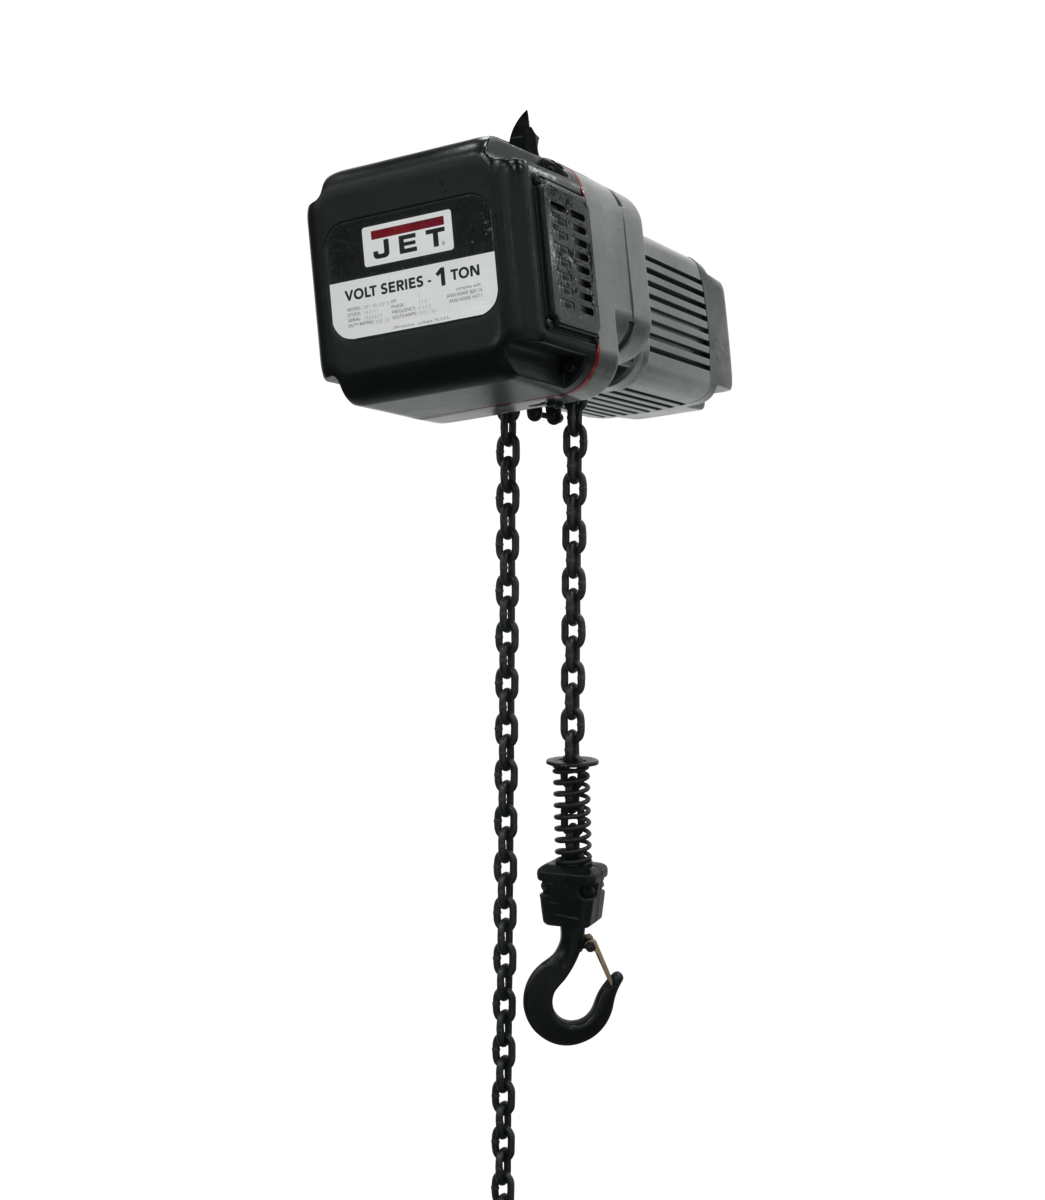 VOLT 1T VARIABLE-SPEED ELECTRIC HOIST 3PH 460V 10' LIFT